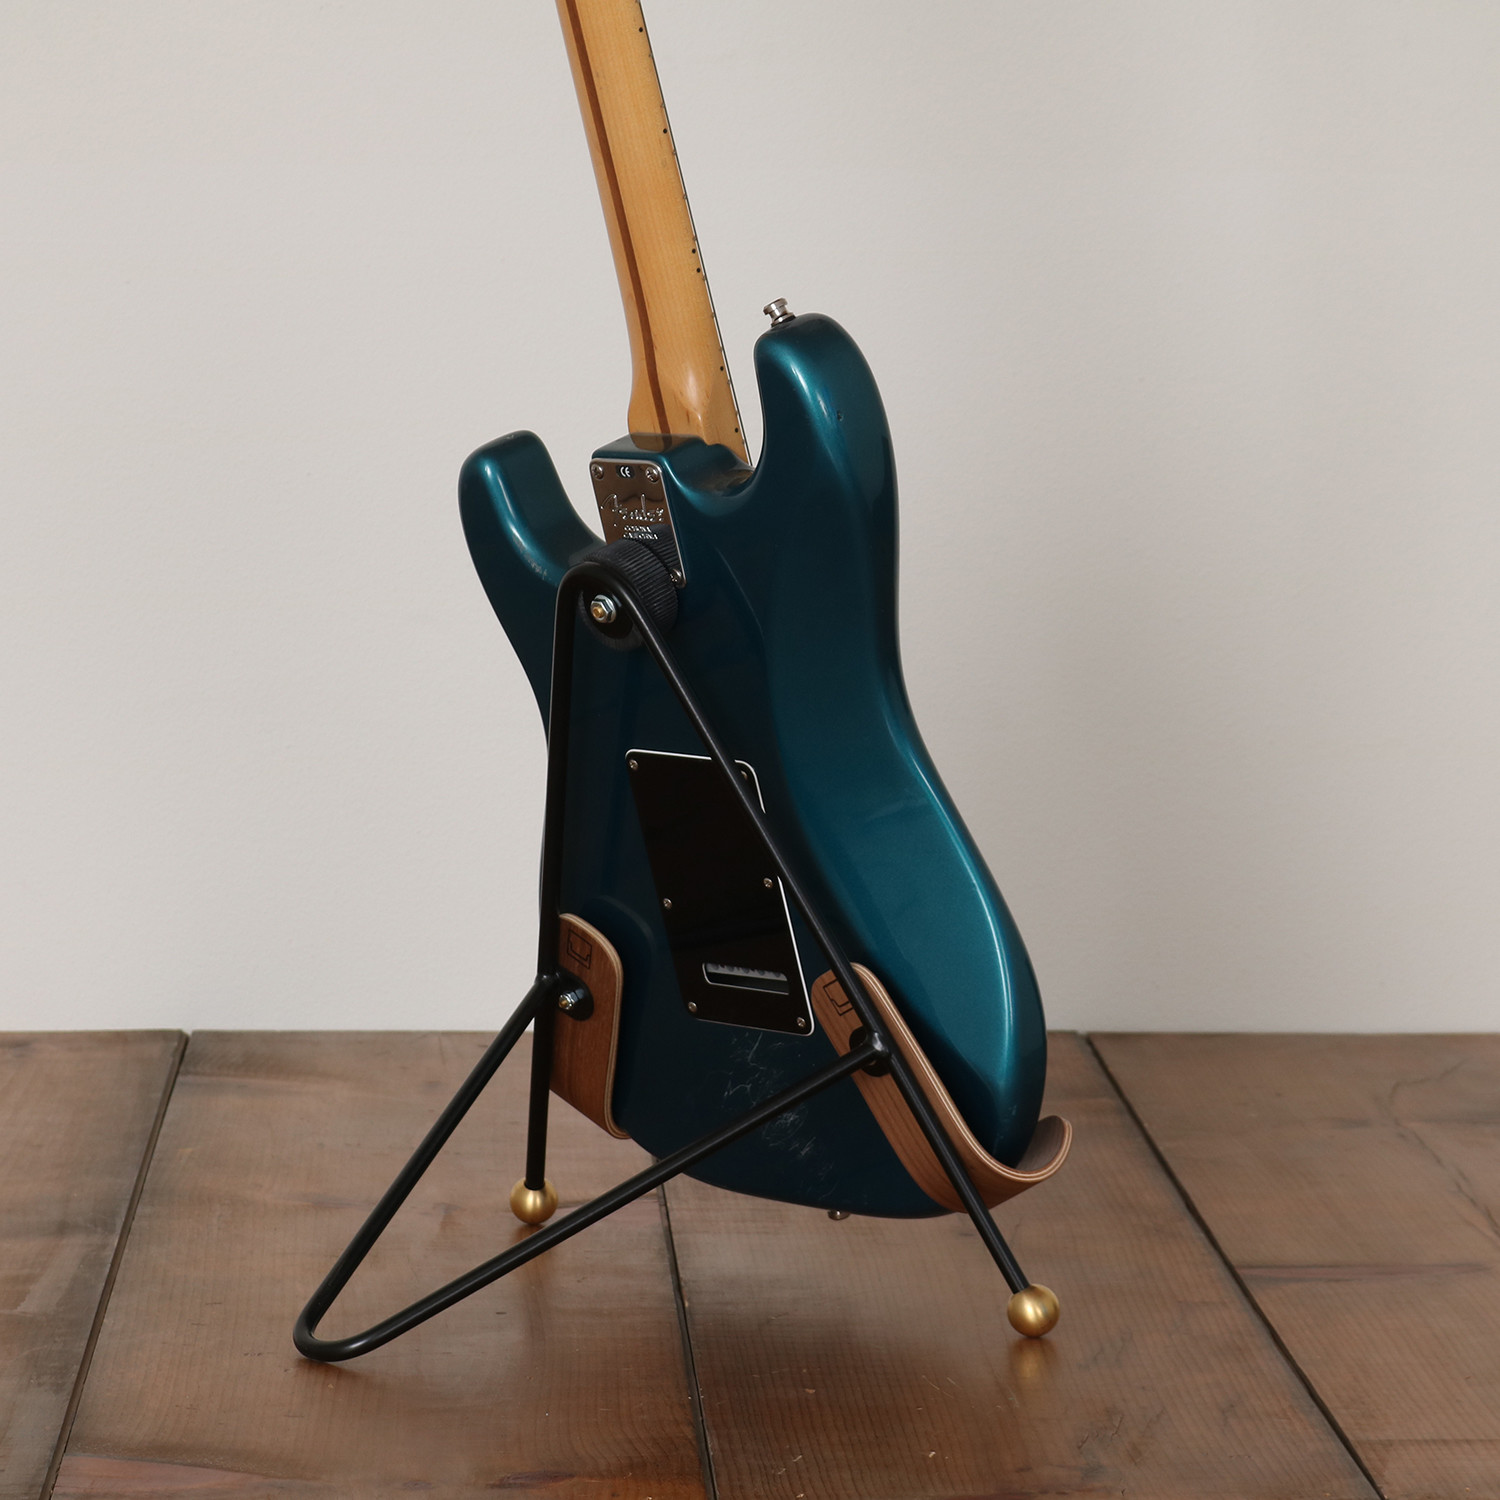 guitar stand electric body onefortythree touch of modern. Black Bedroom Furniture Sets. Home Design Ideas